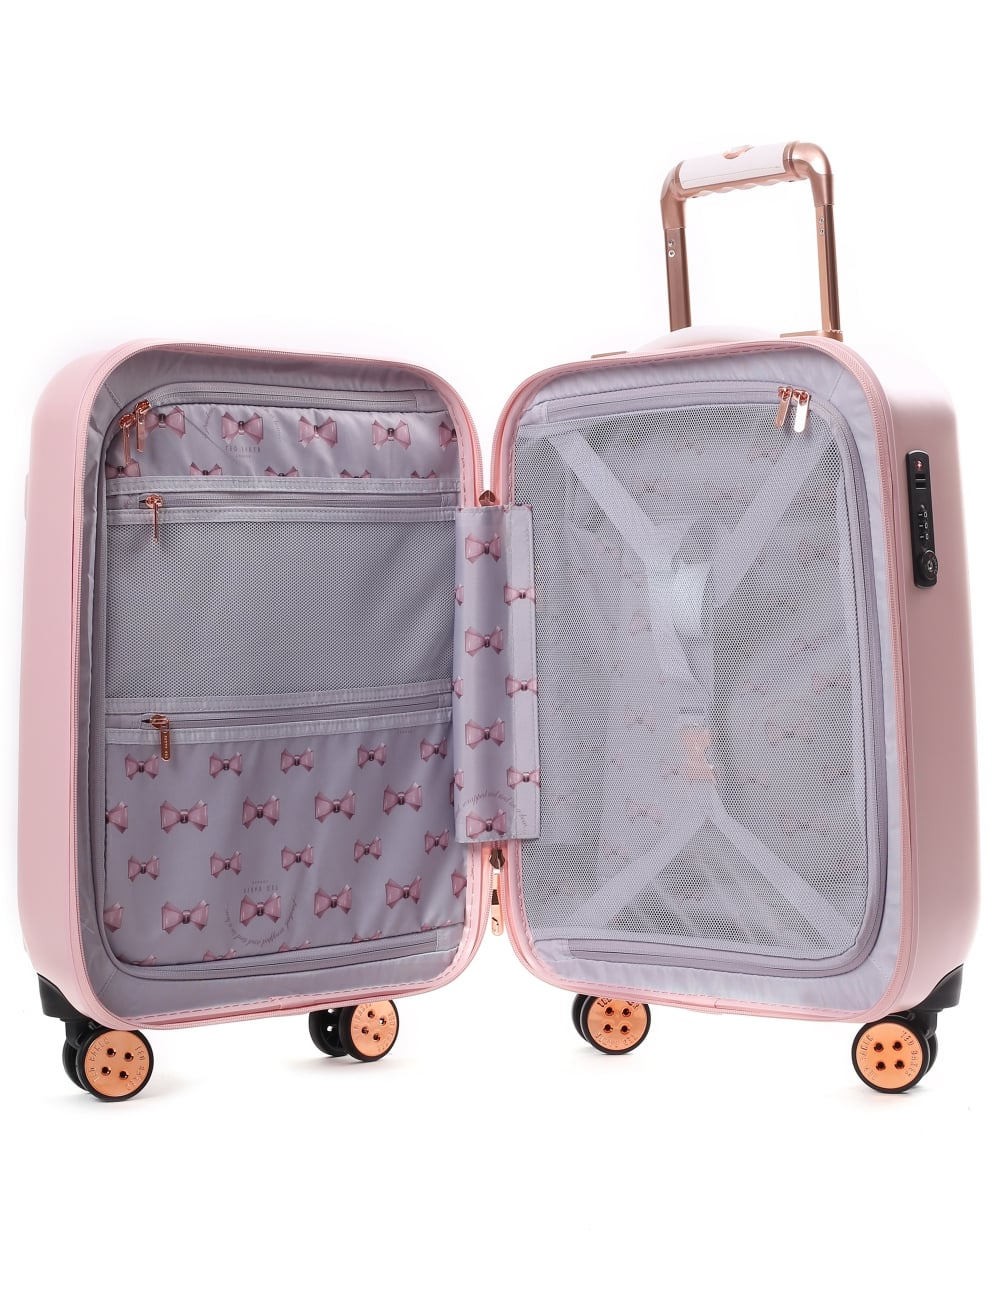 37481a1b70fd Ted Baker Beaue Women s Moulded Bow 4 Wheel Trolley